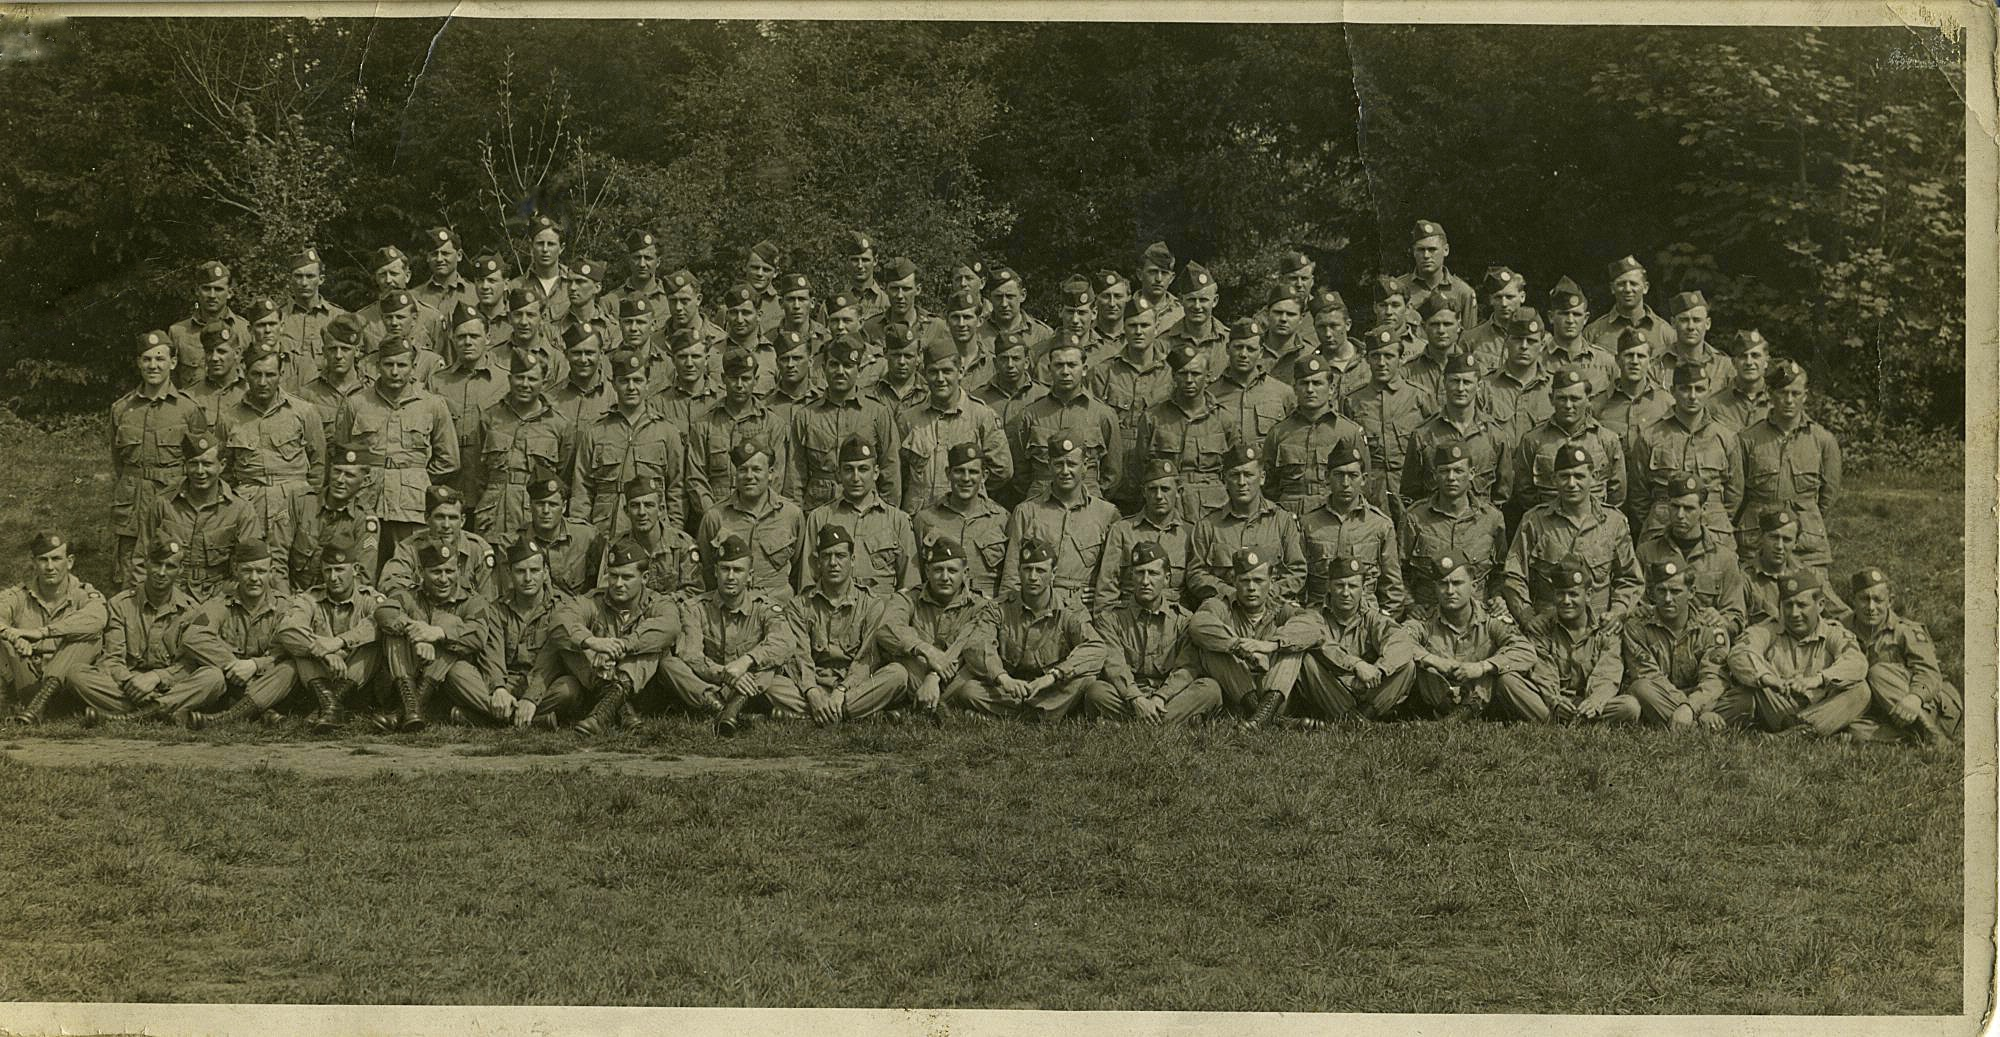 2nd Battalion's Headquarters Company England, 1944.